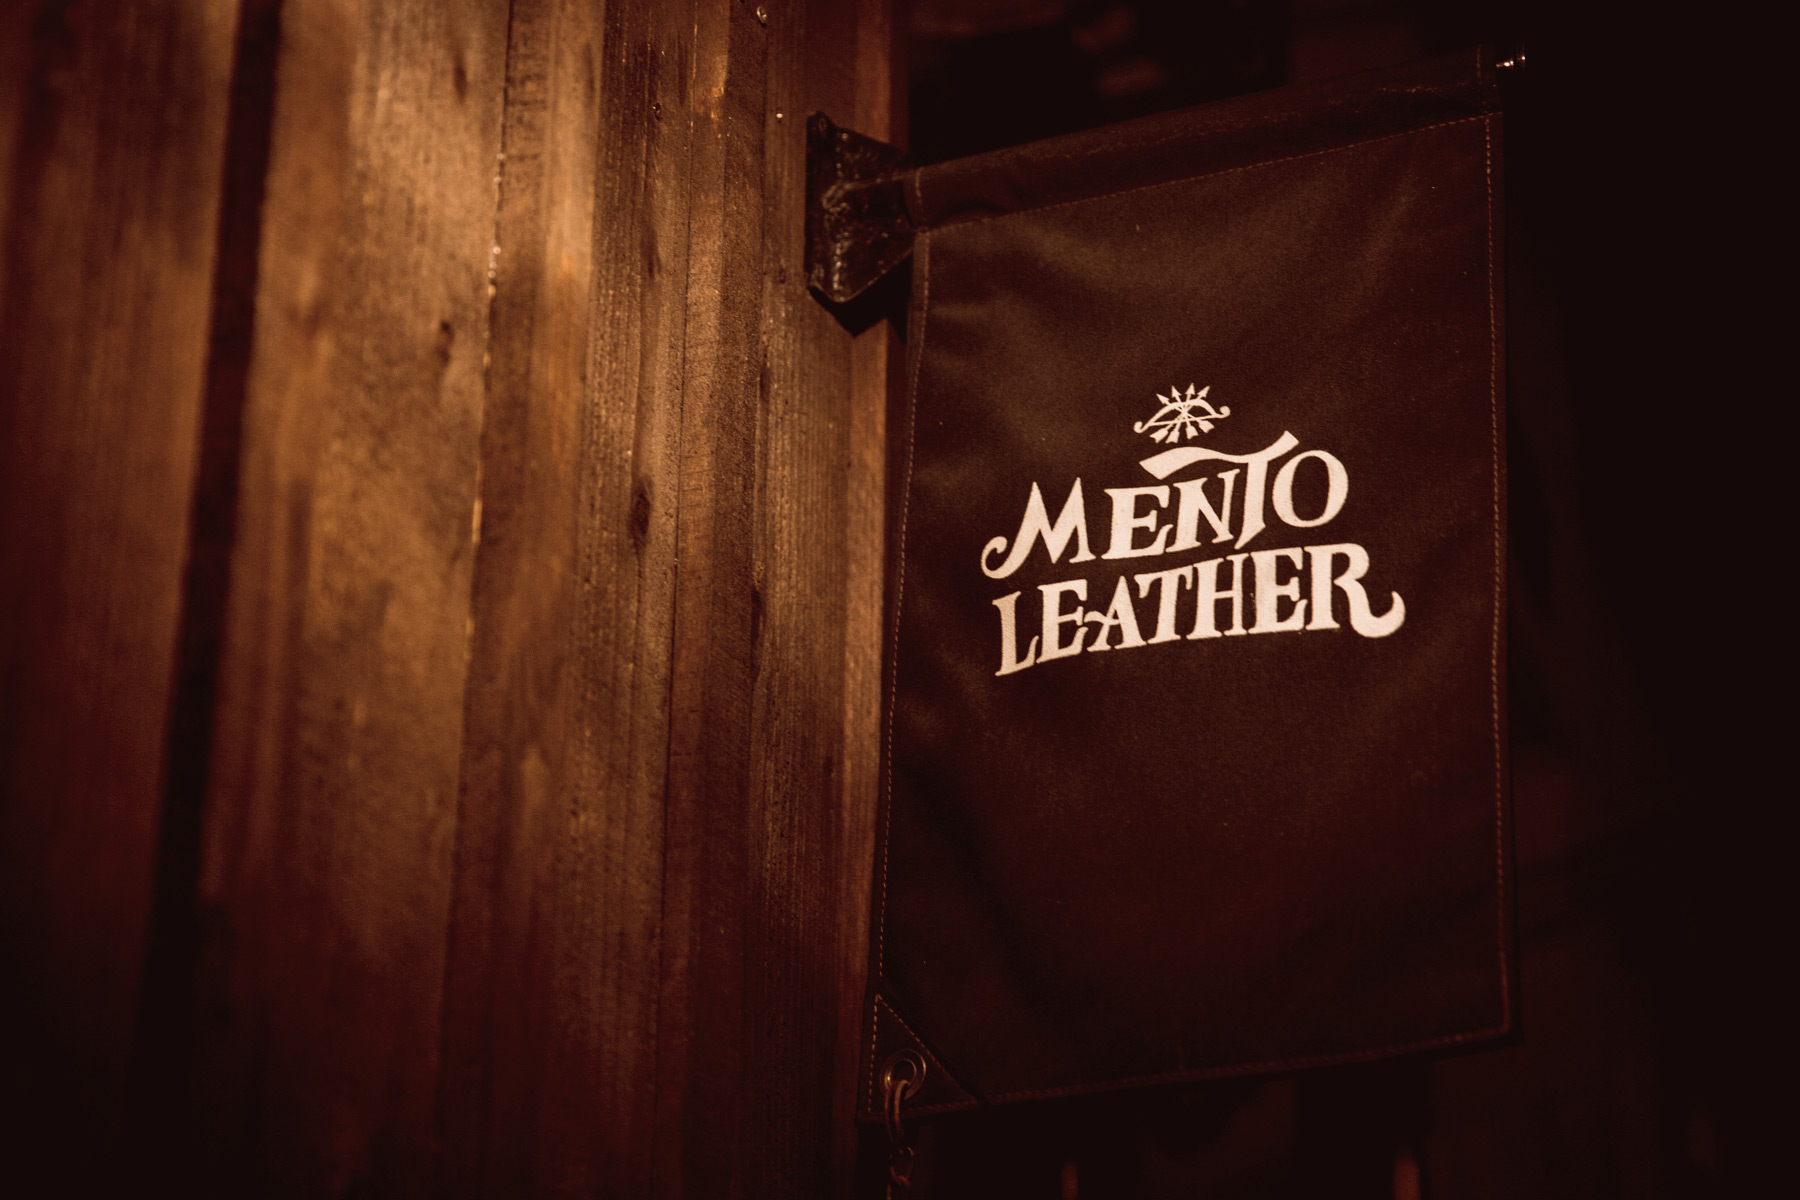 MENTO LEATHER